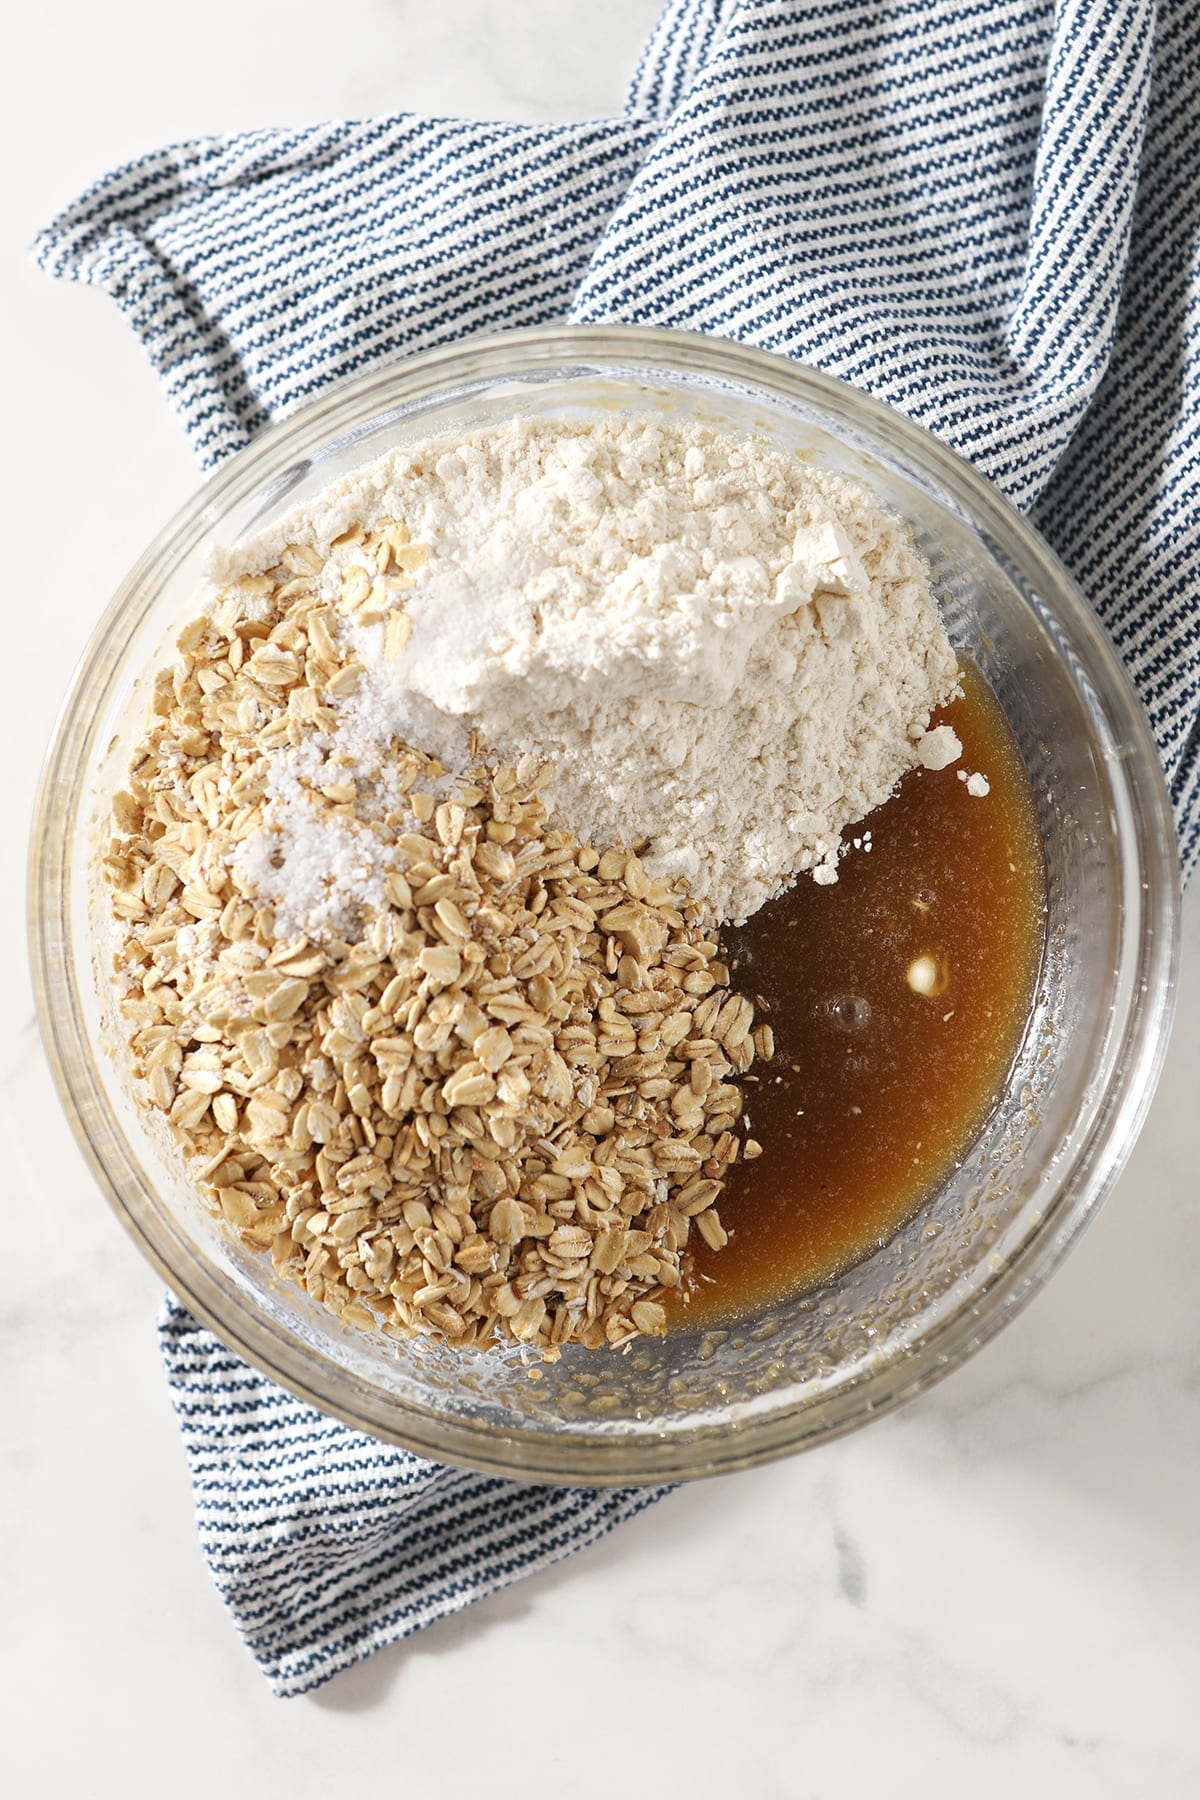 Rolled oats, flour and salt sit on top of the wet ingredients for the crust in a clear glass bowl on top of a blue and white striped towel